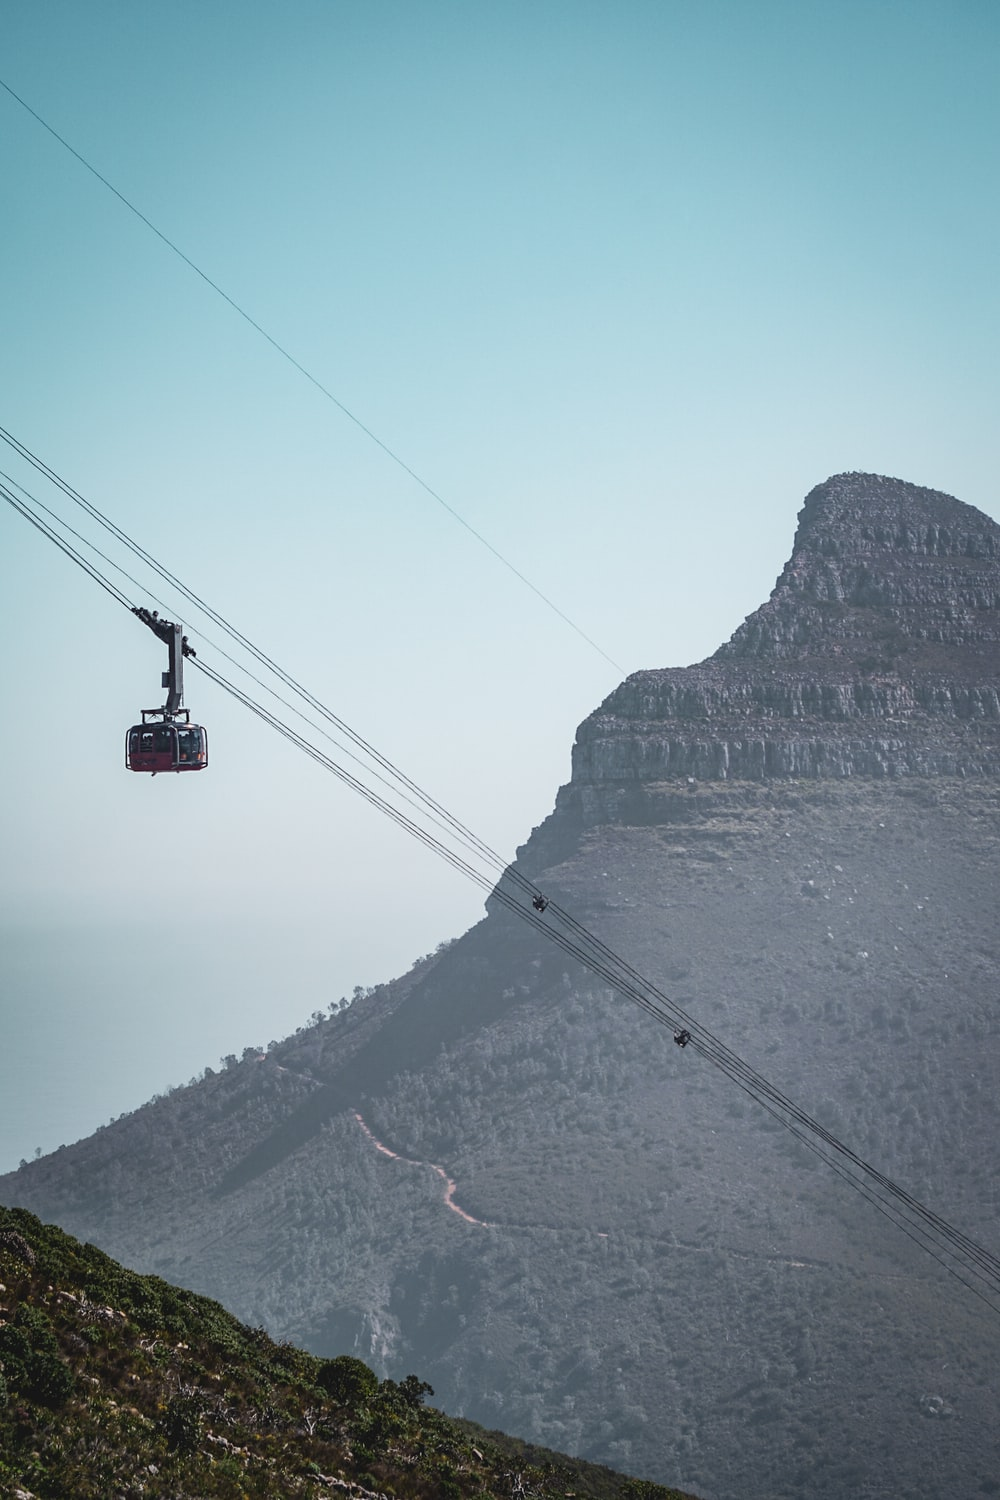 aerial photo of black cable car